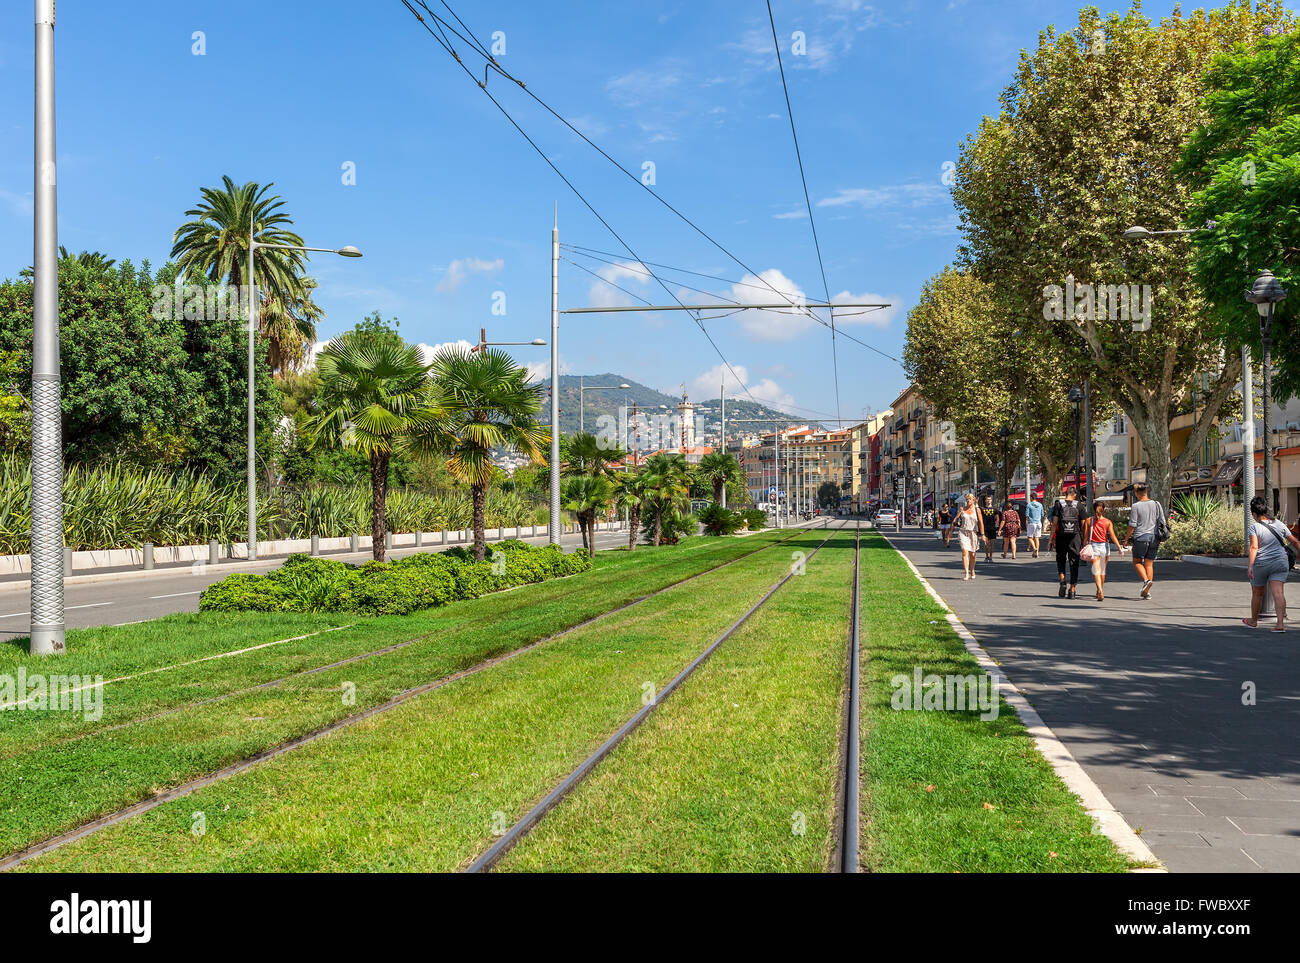 Tram rails on green grass in the center of Nice, France. - Stock Image